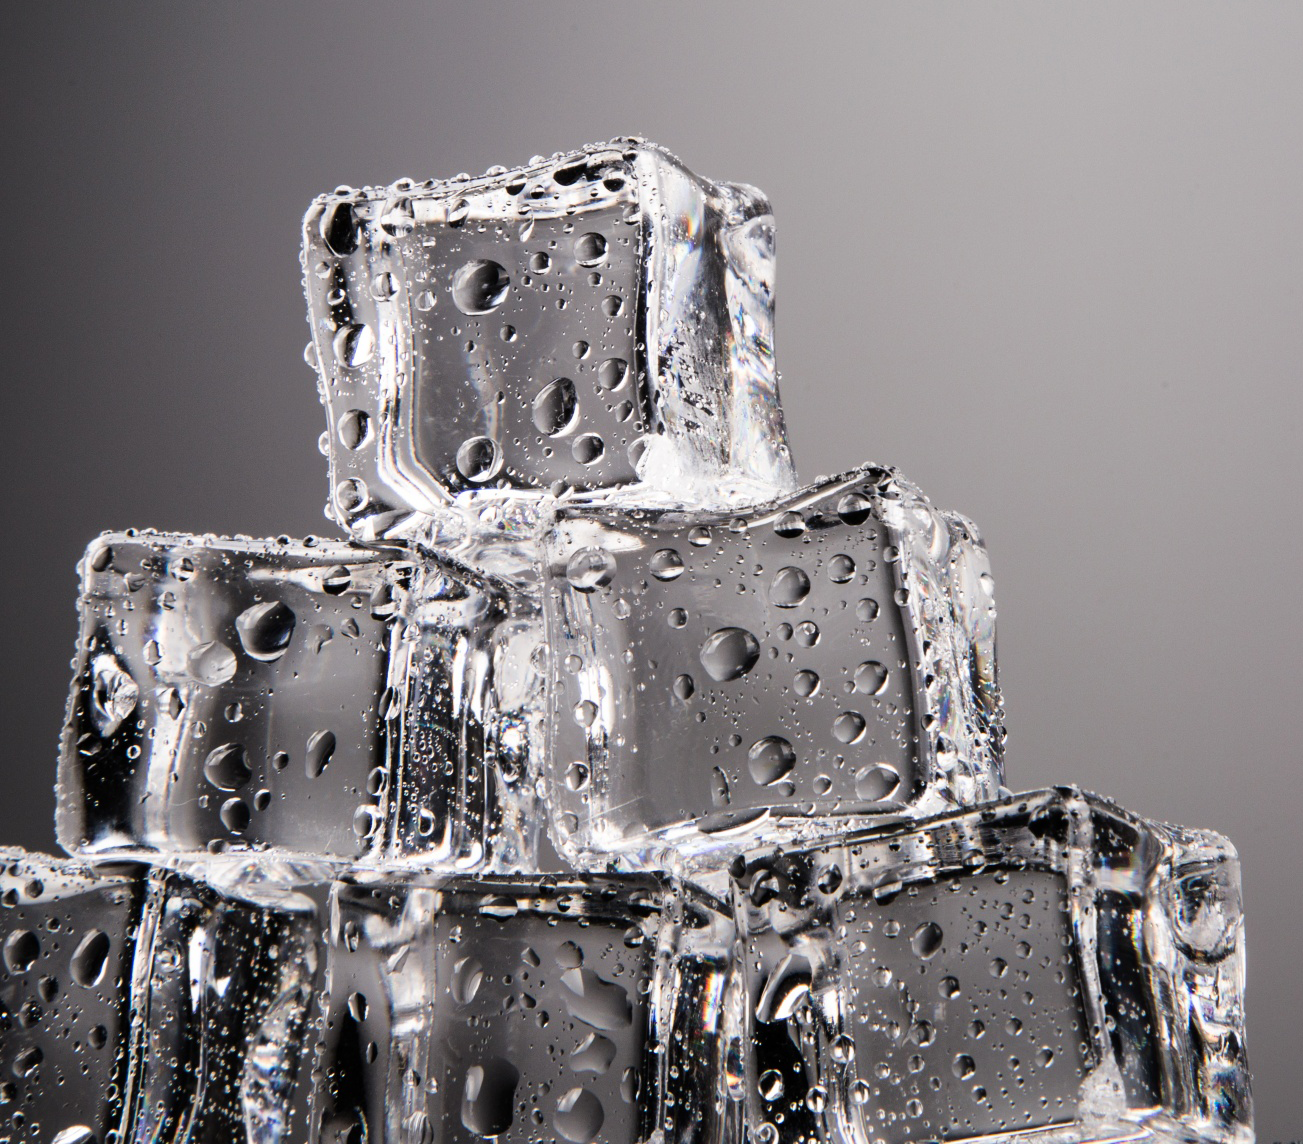 Using Ice in Acne Treatment